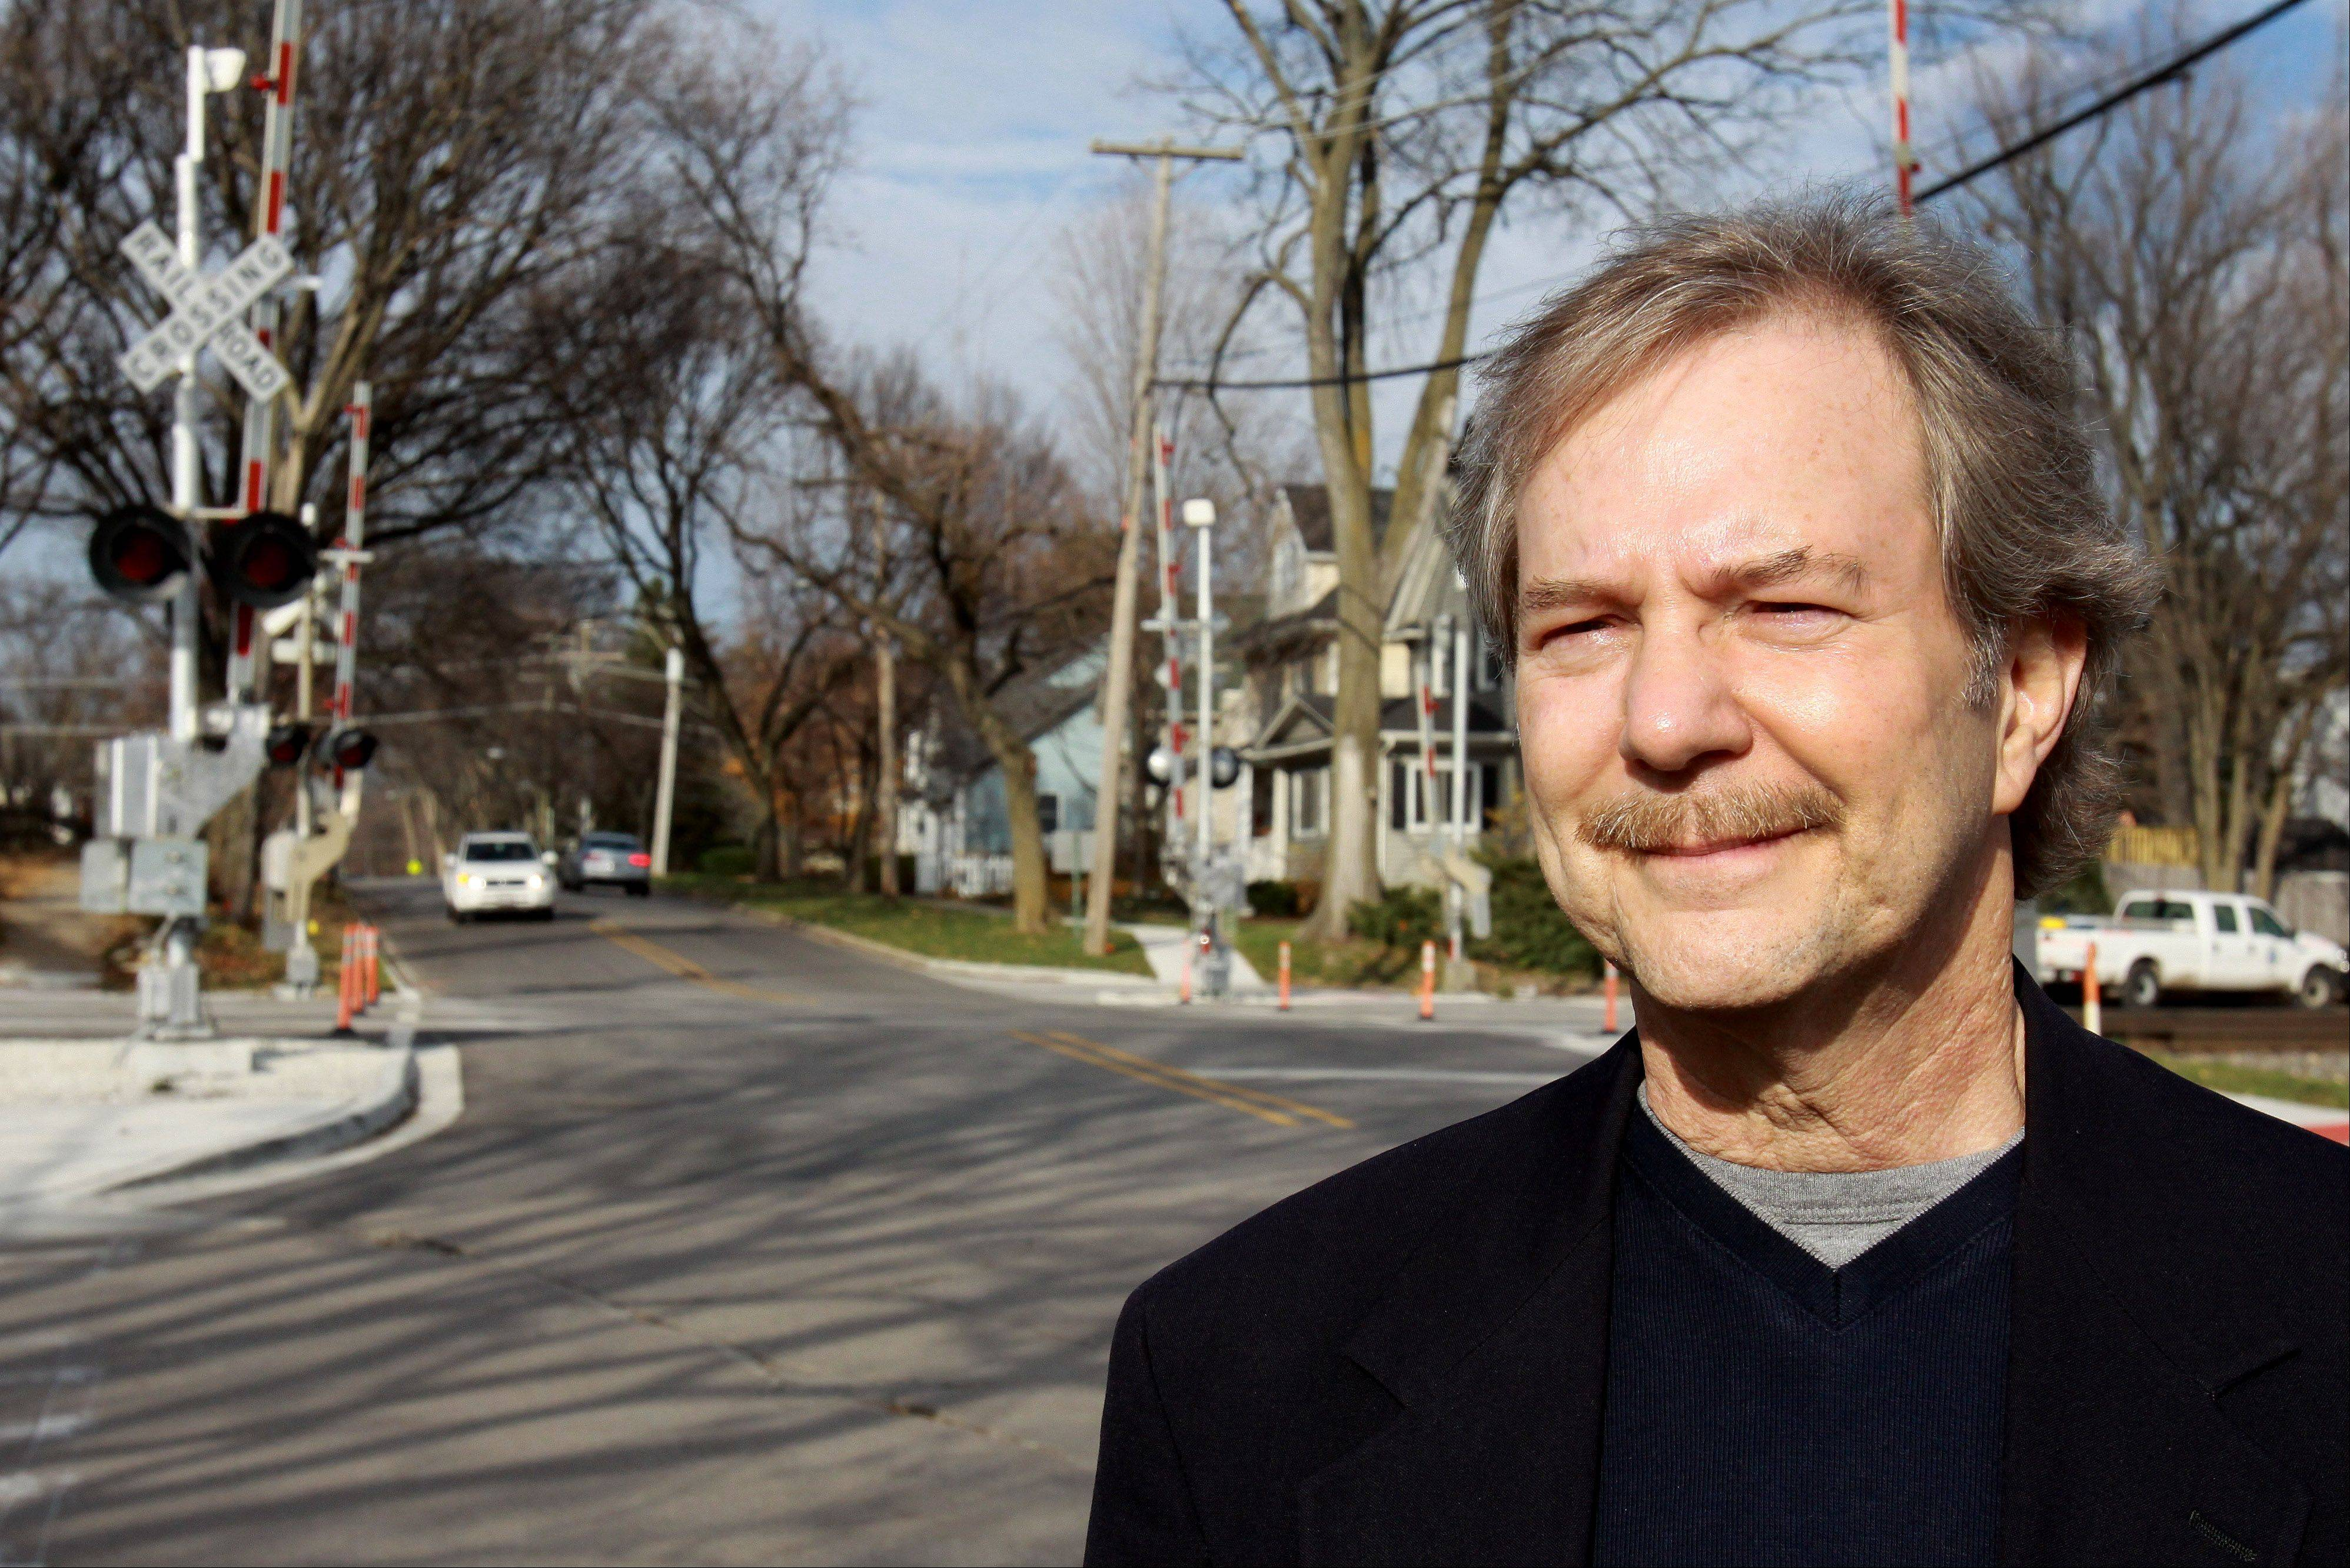 Lanny Wilson stands by a four-quad gate at Monroe Street in Hinsdale, where his daughter was killed in 1994 after a train hit her car. Wilson, a physician and chairman of the DuPage Railroad Safety Council, pushed for the safety improvement that prevents drivers from slaloming around the gates.